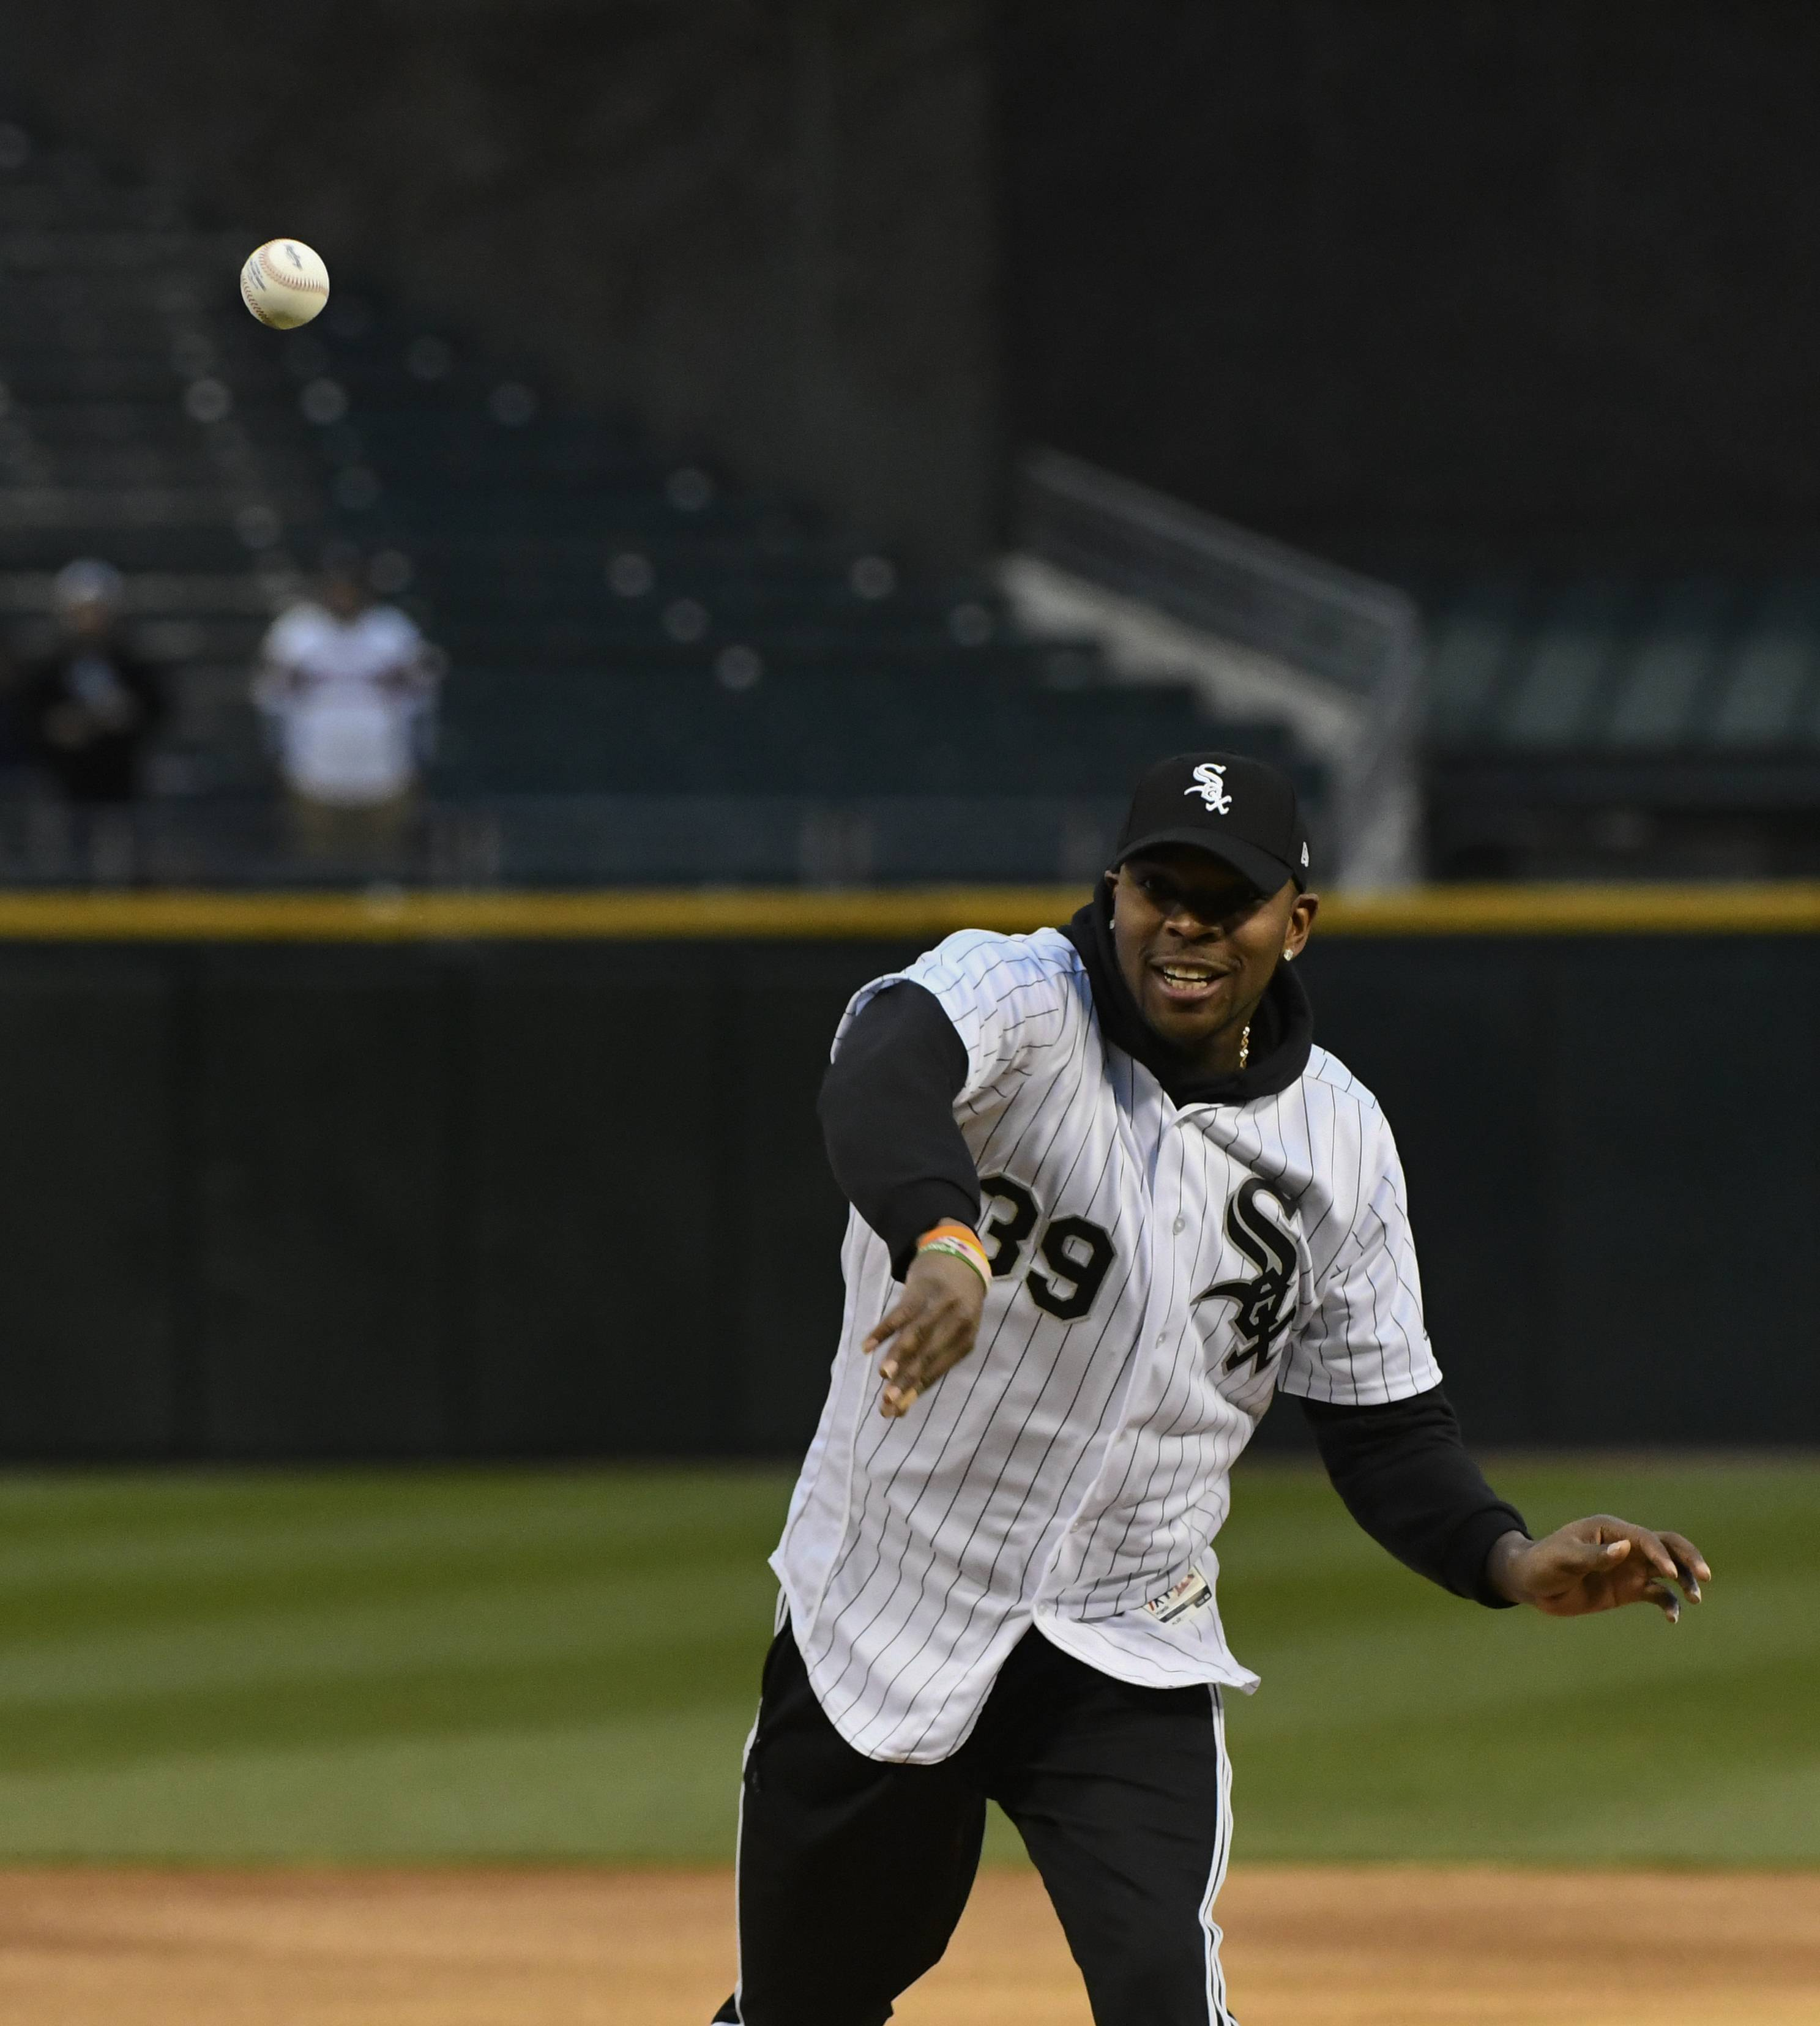 Chicago Bears player Eddie Jackson throws out a ceremonial first pitch before a baseball game between the Chicago White Sox and the Kansas City Royals, Monday, April 15, 2019, in Chicago.